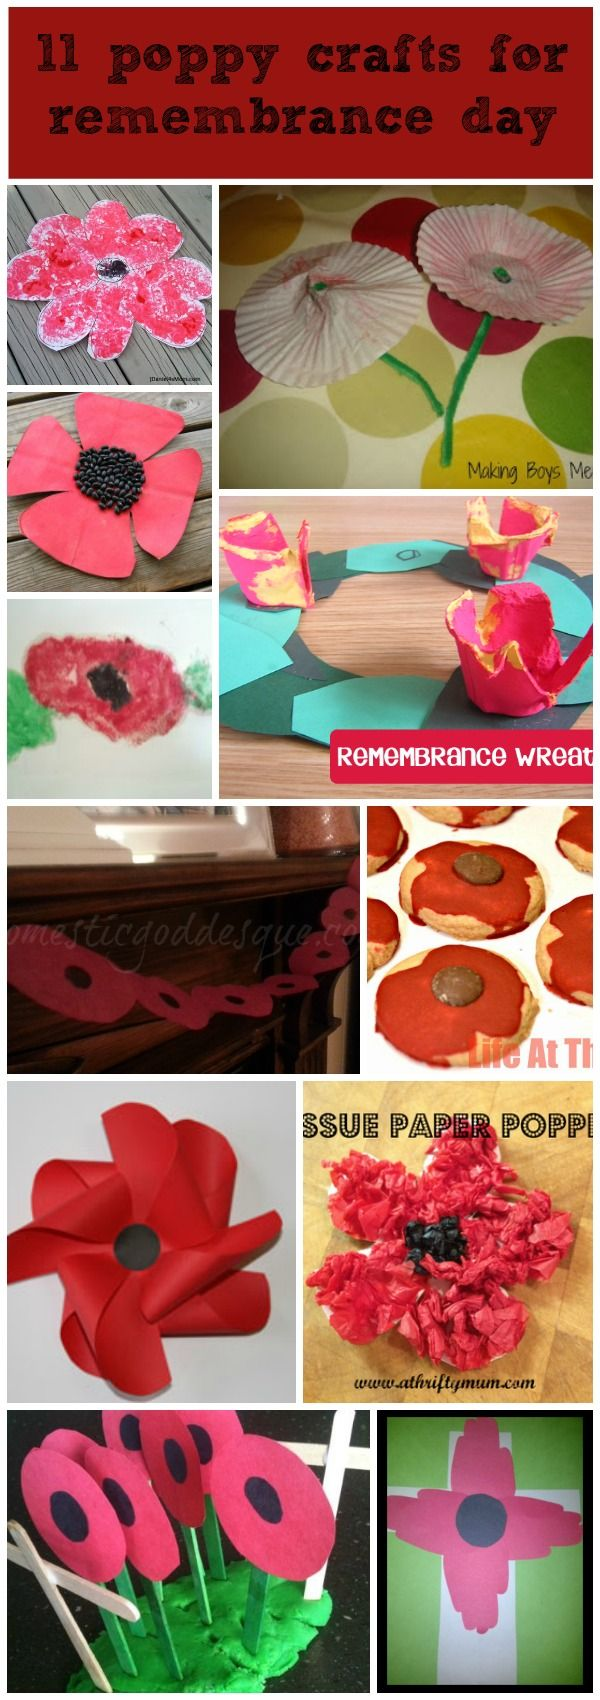 11 poppy crafts for Remembrance Day or Memorial Day www.operationwearehere.com/memorialday.html